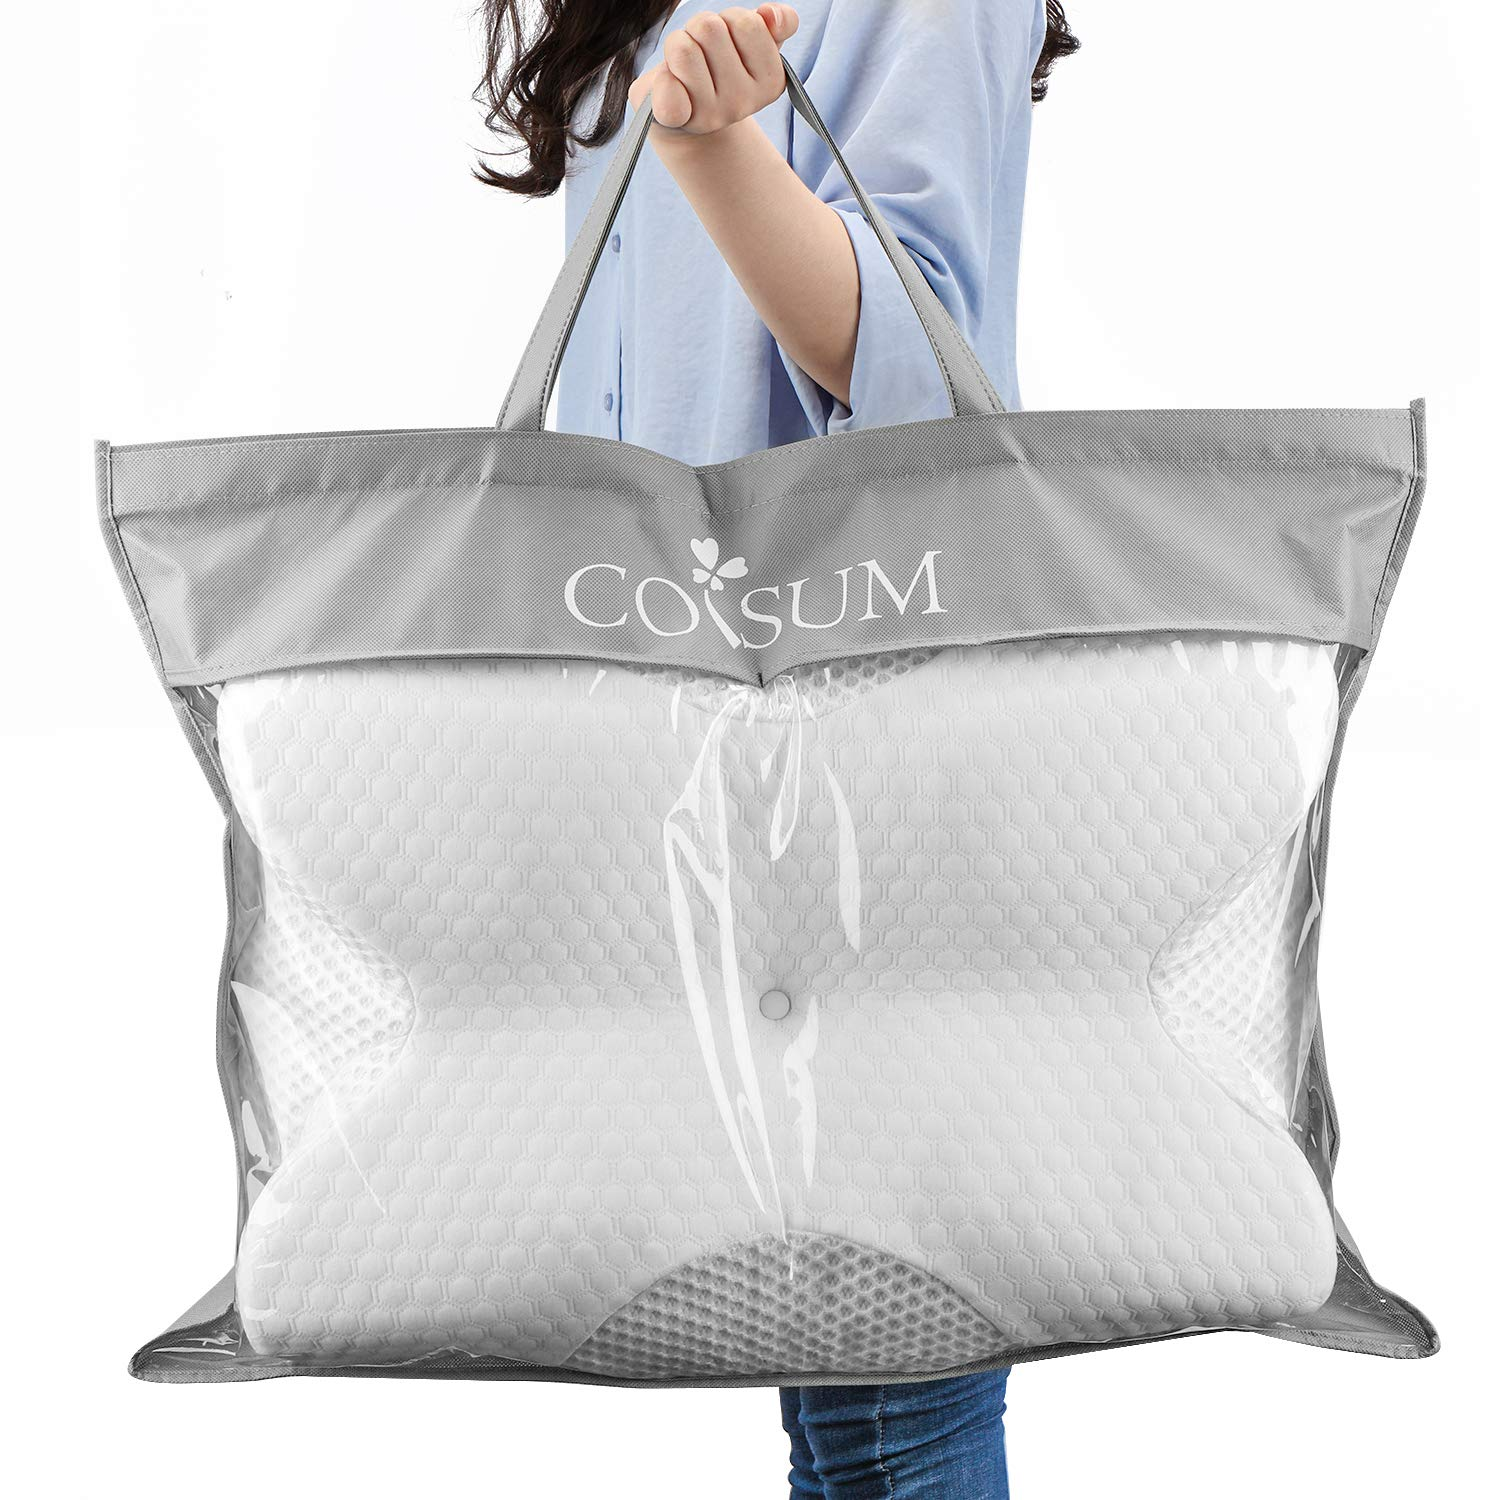 Coisum Back Sleeper Cervical Pillow - Memory Foam Pillow for Neck and Shoulder Pain Relief - Orthopedic Contour Ergonomic Pillow for Neck Support with Breathable Cover by Coisum